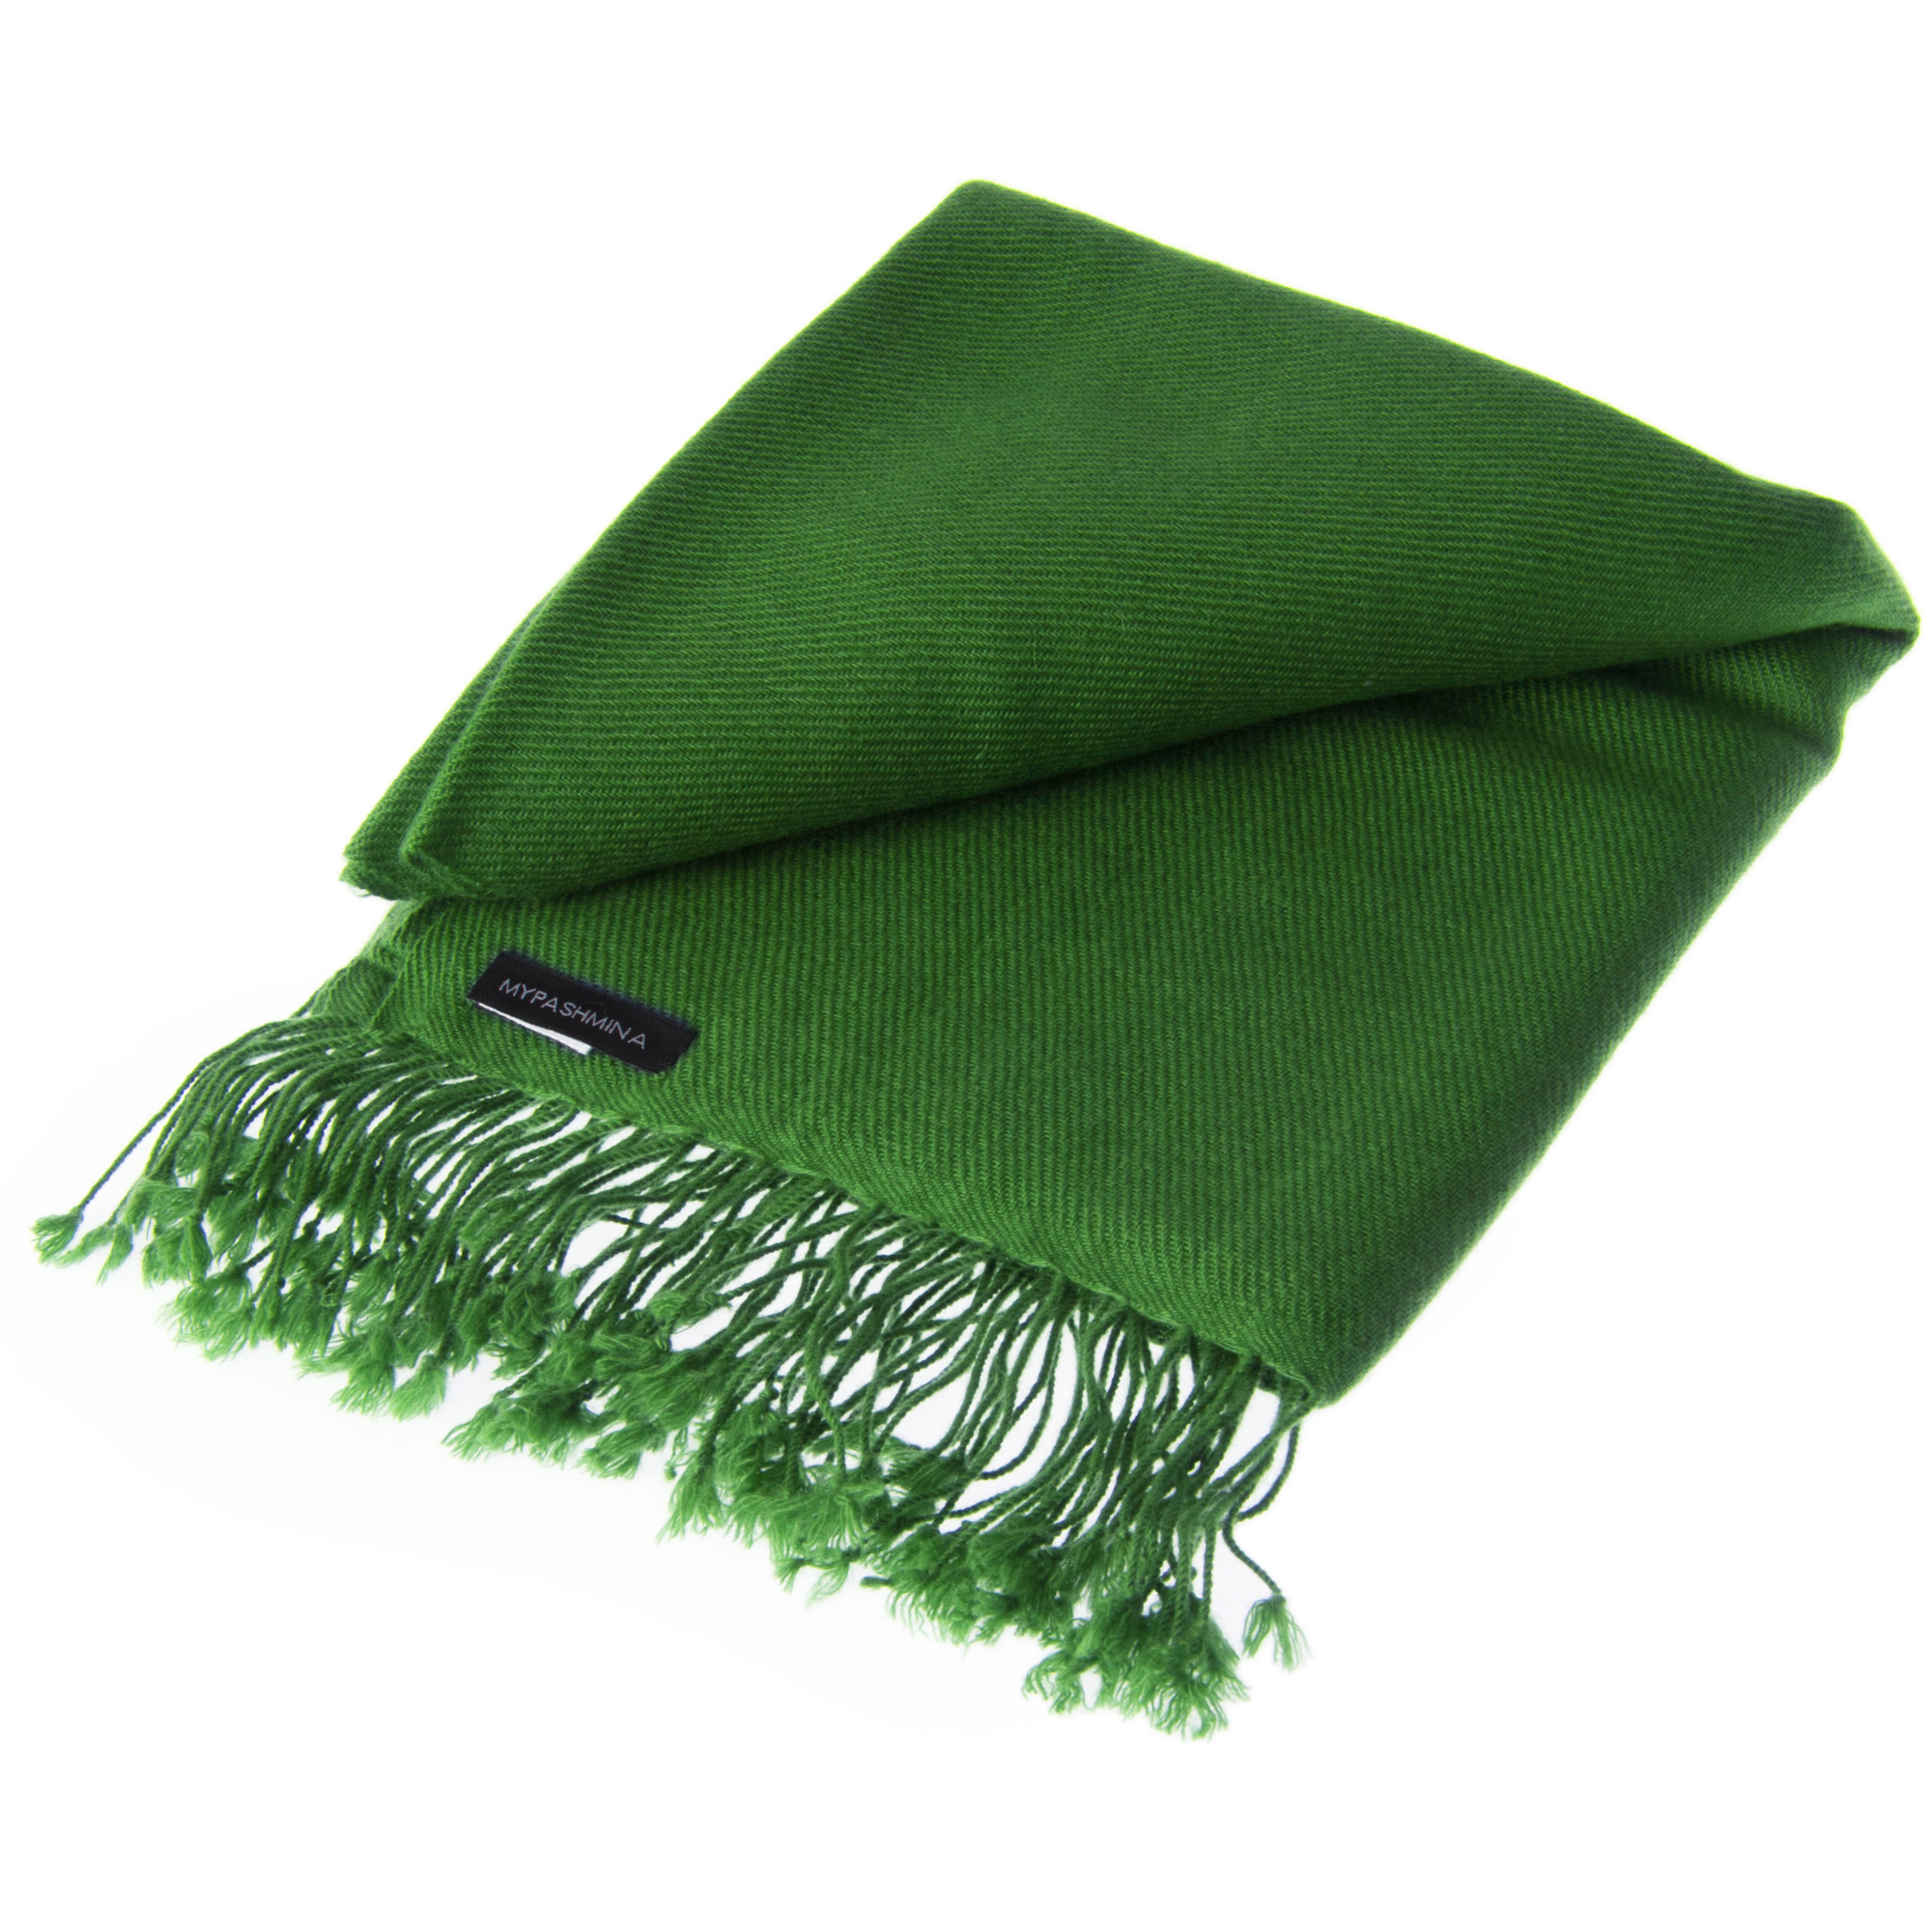 Pashmina Shawl - 90x200cm - 100% Cashmere - Forest Green